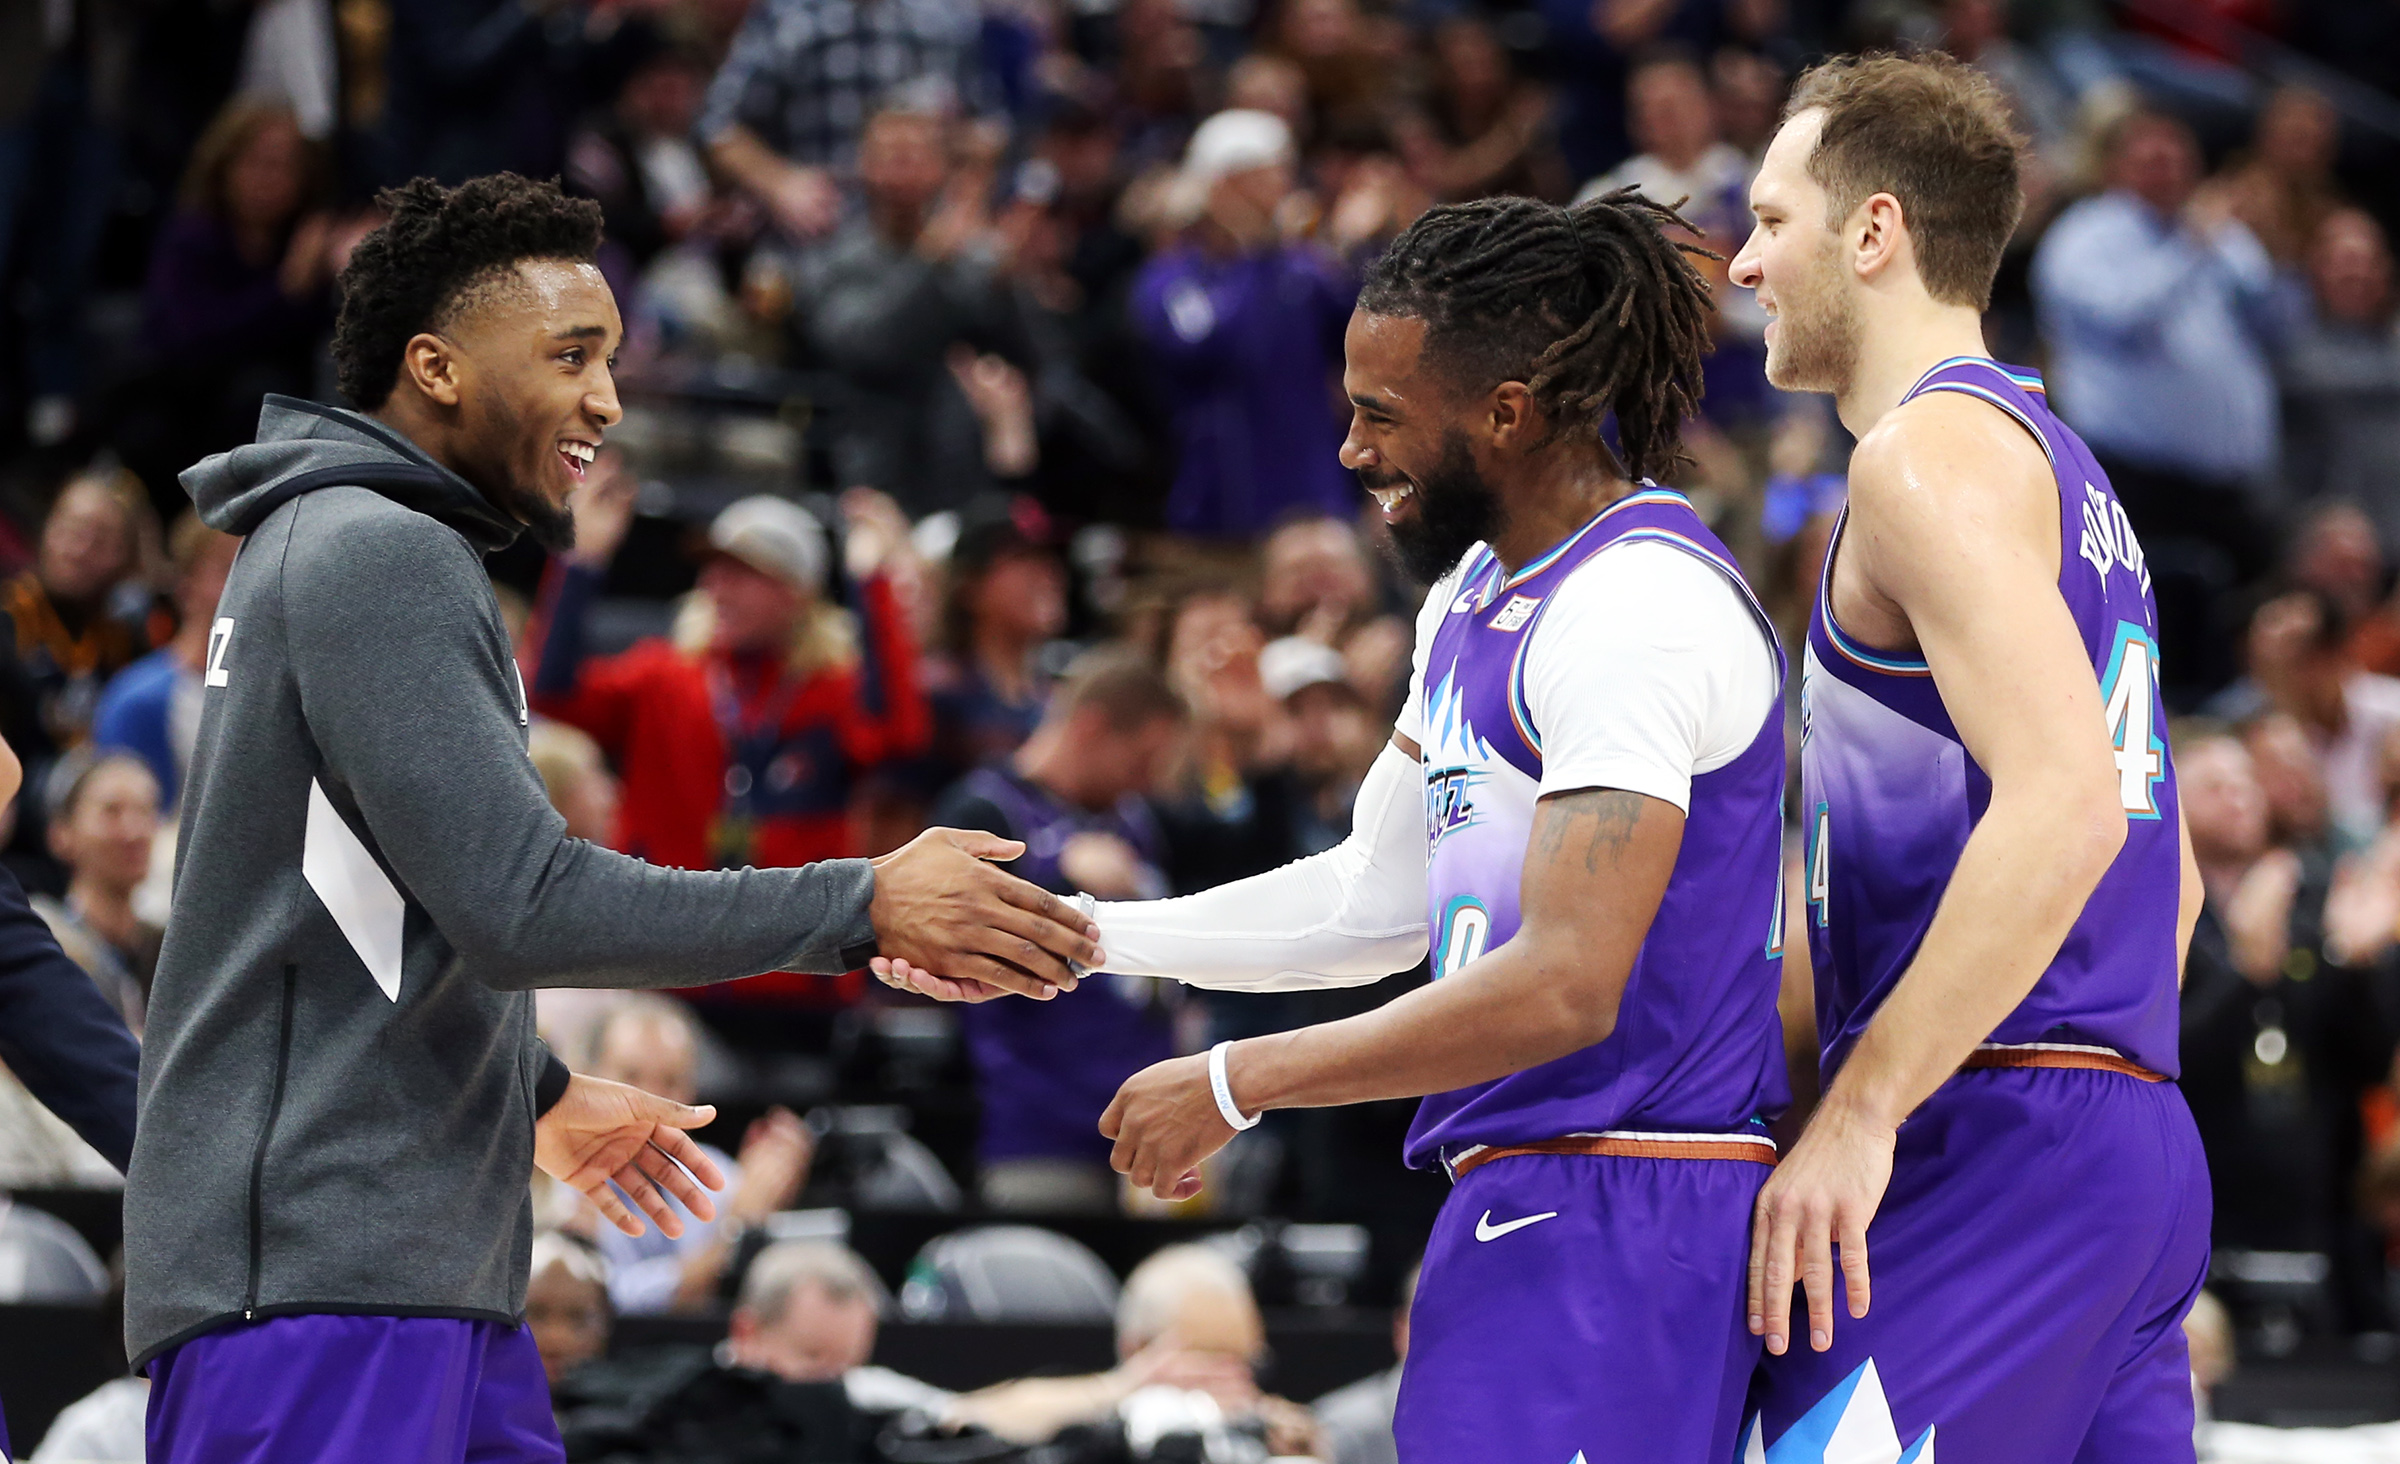 Utah Jazz guard Donovan Mitchell (45) congratulates teammate Utah Jazz guard Mike Conley (10) at a timeout as the Utah Jazz and the LA Clippers play an NBA basketball game at Vivint Arena in Salt Lake City on Wednesday, Oct. 30, 2019. Jazz won 110-96.